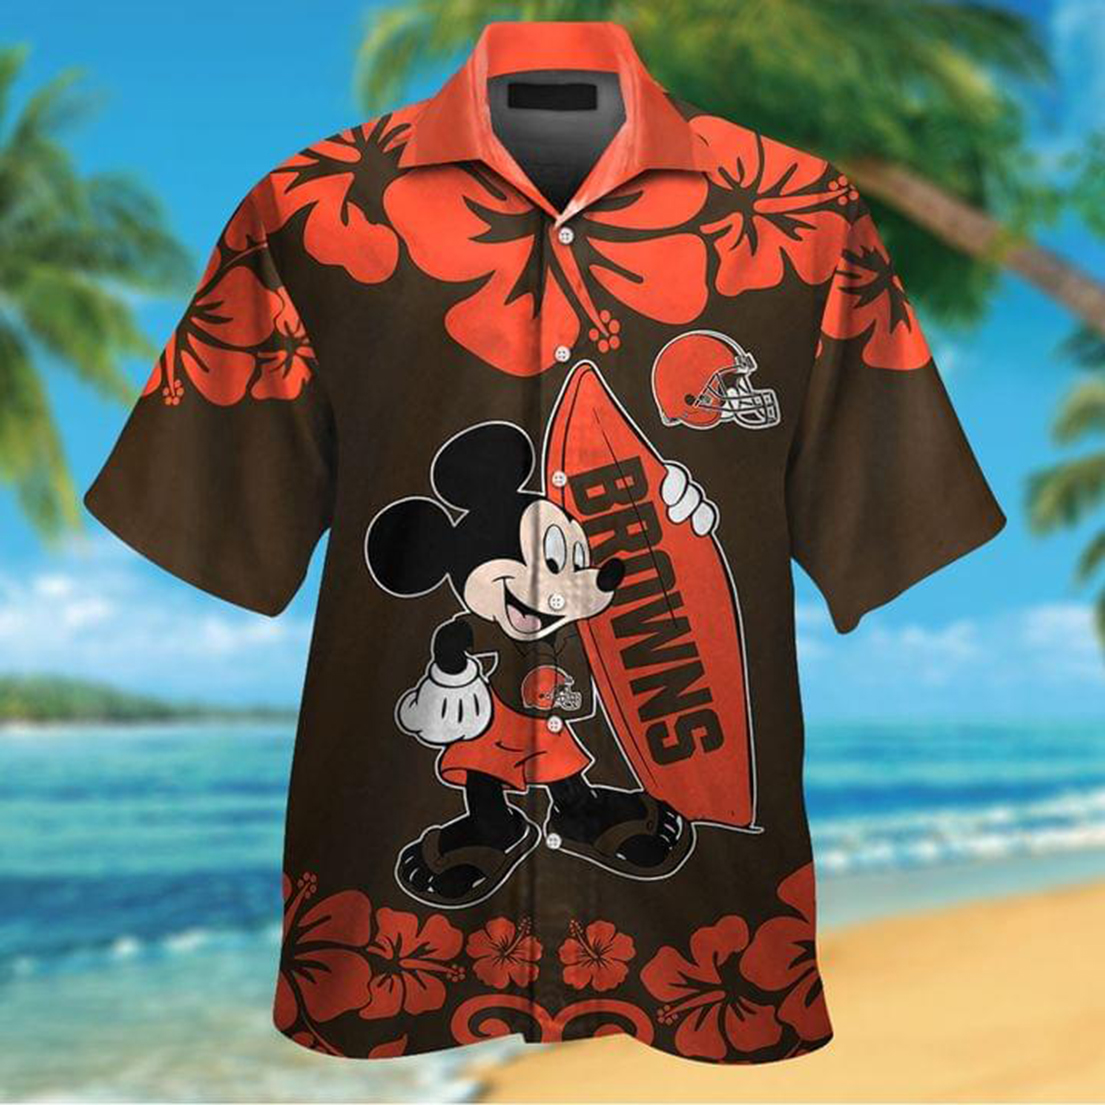 Mickey mouse and surfboard Cleveland Browns hawaiian shirt and short sleeve shirt - Picture 1